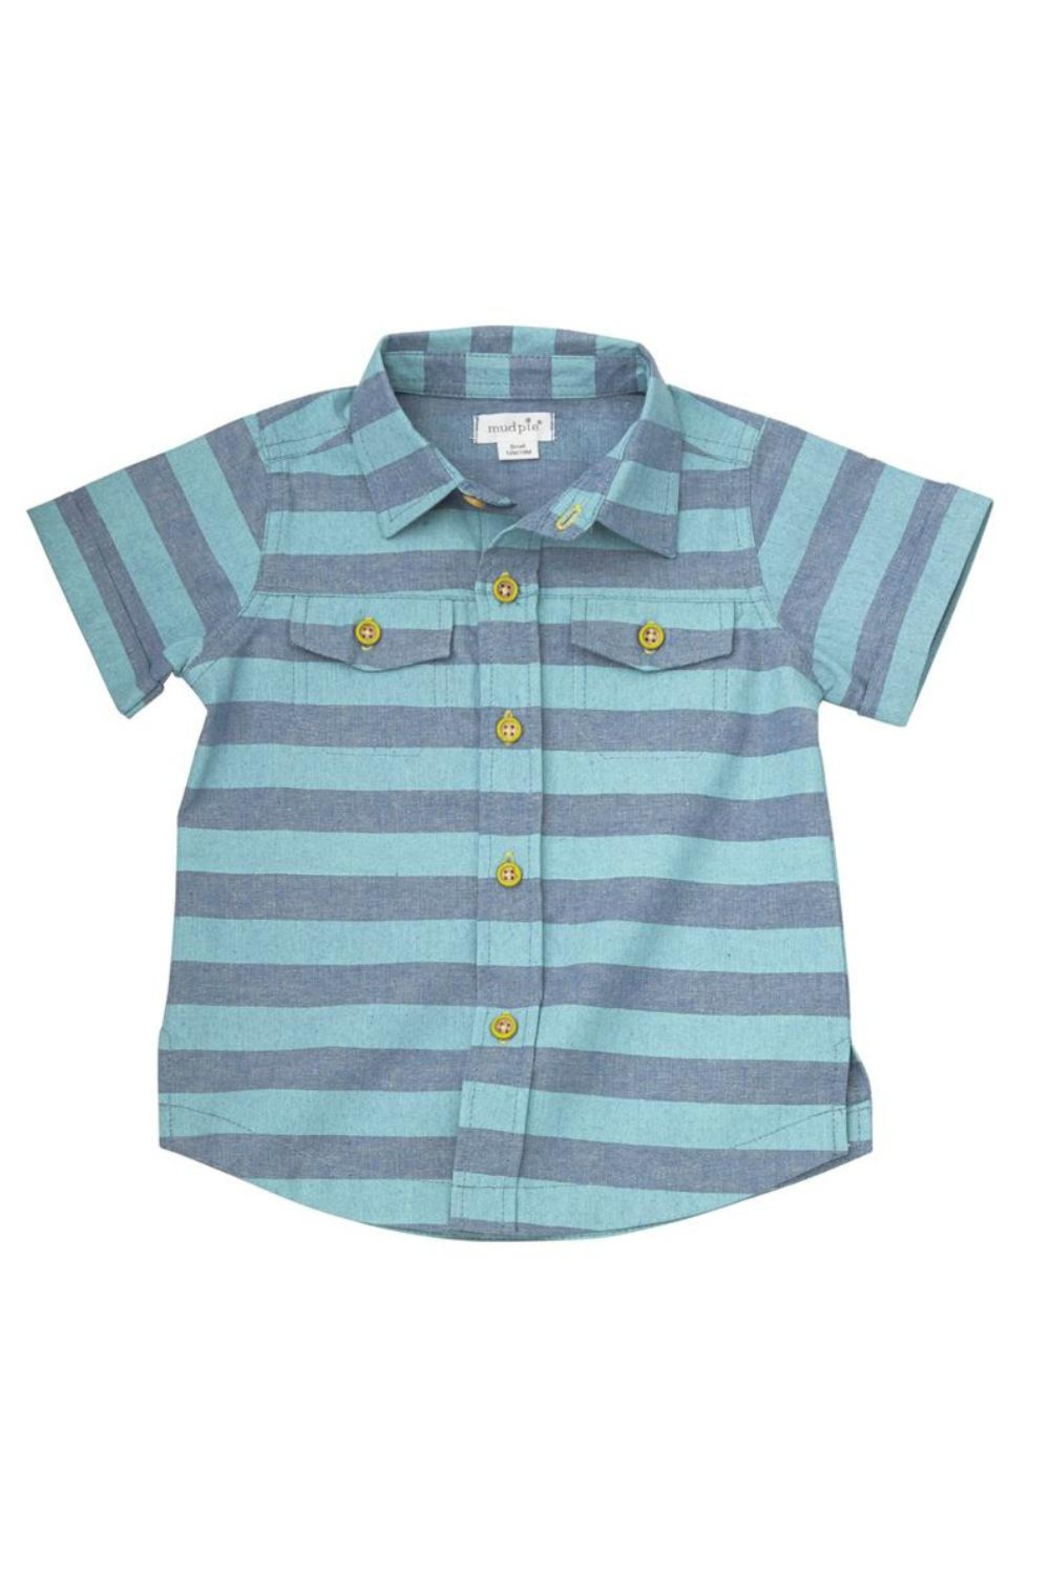 Mud Pie Striped Resort Shirt - Main Image